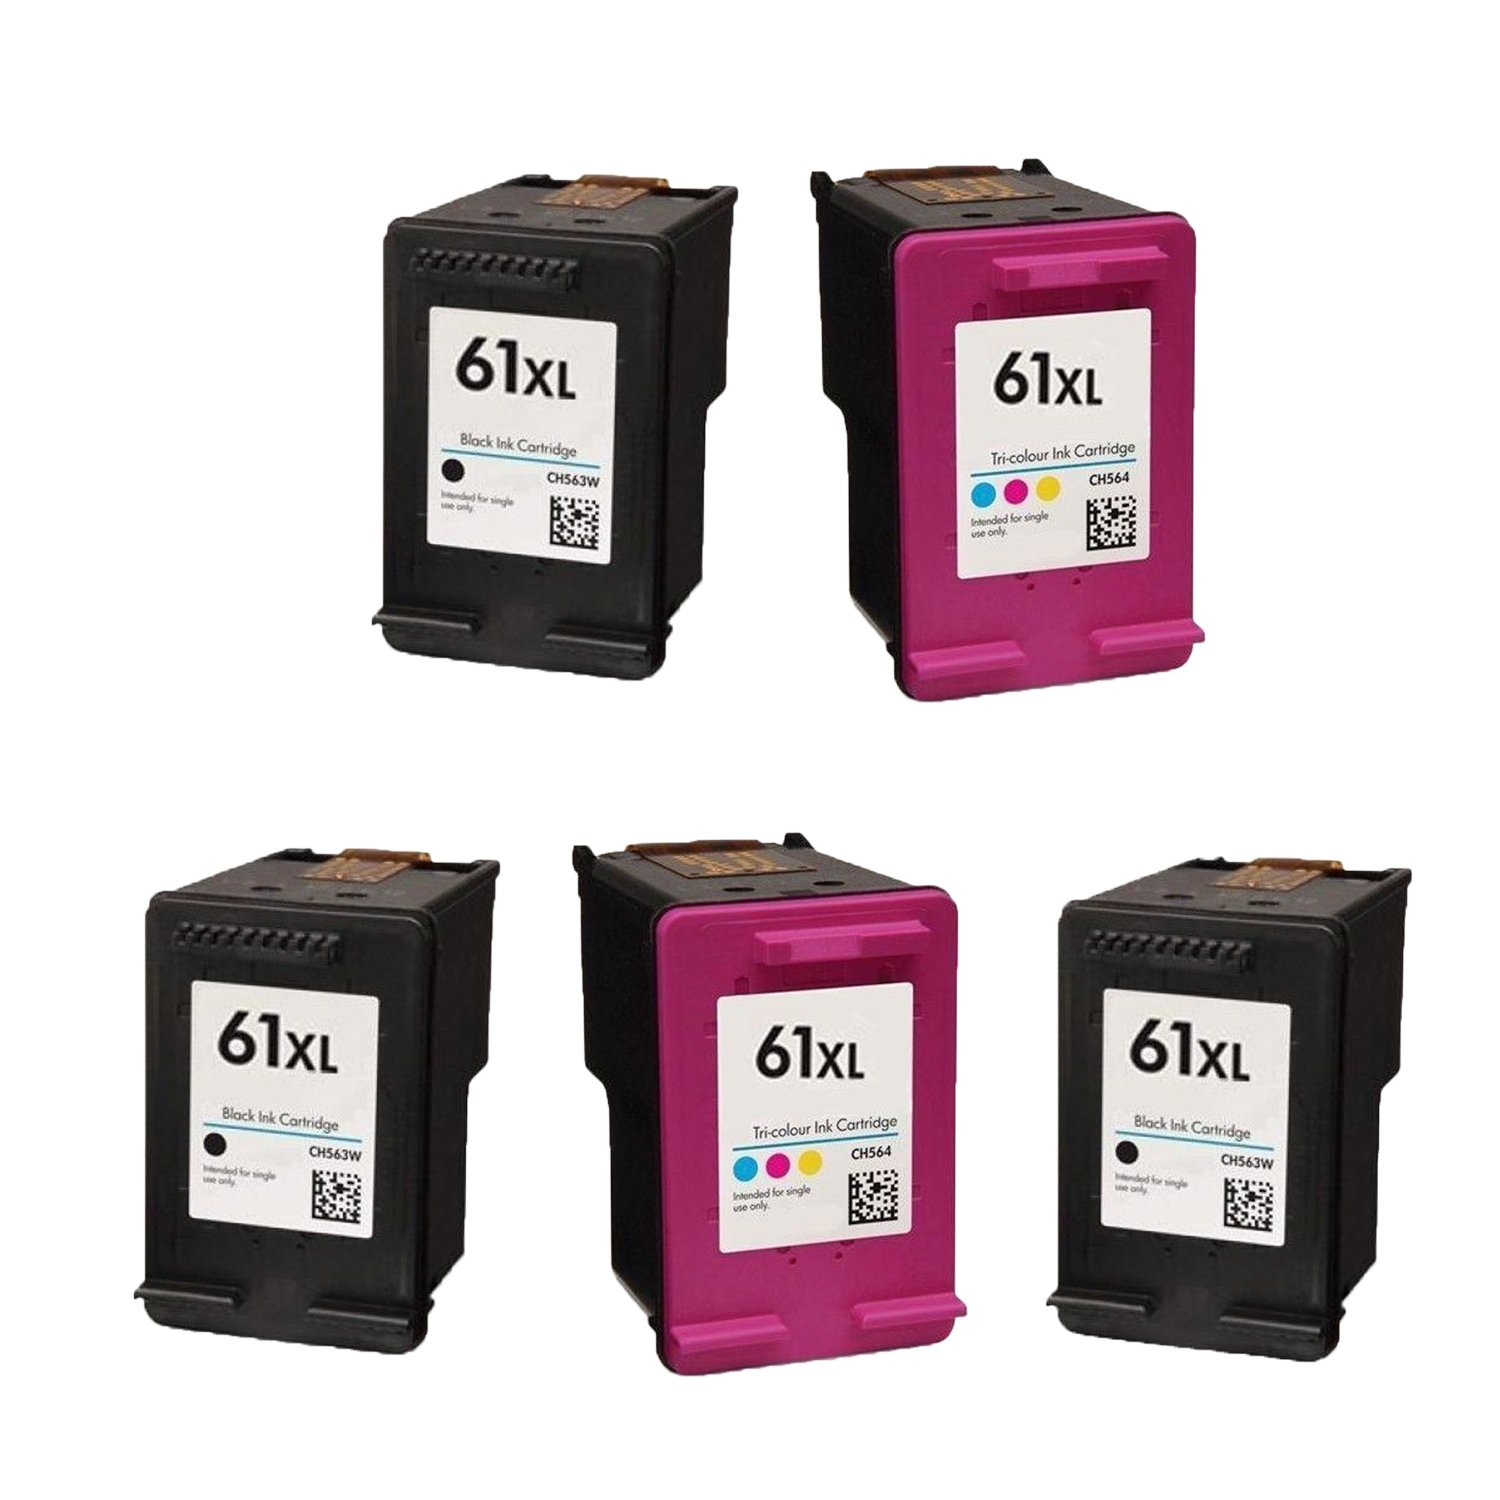 Amazon Generic Remanufactured Ink Cartridge Replacement for HP CH563WN Black 1 Pack fice Products